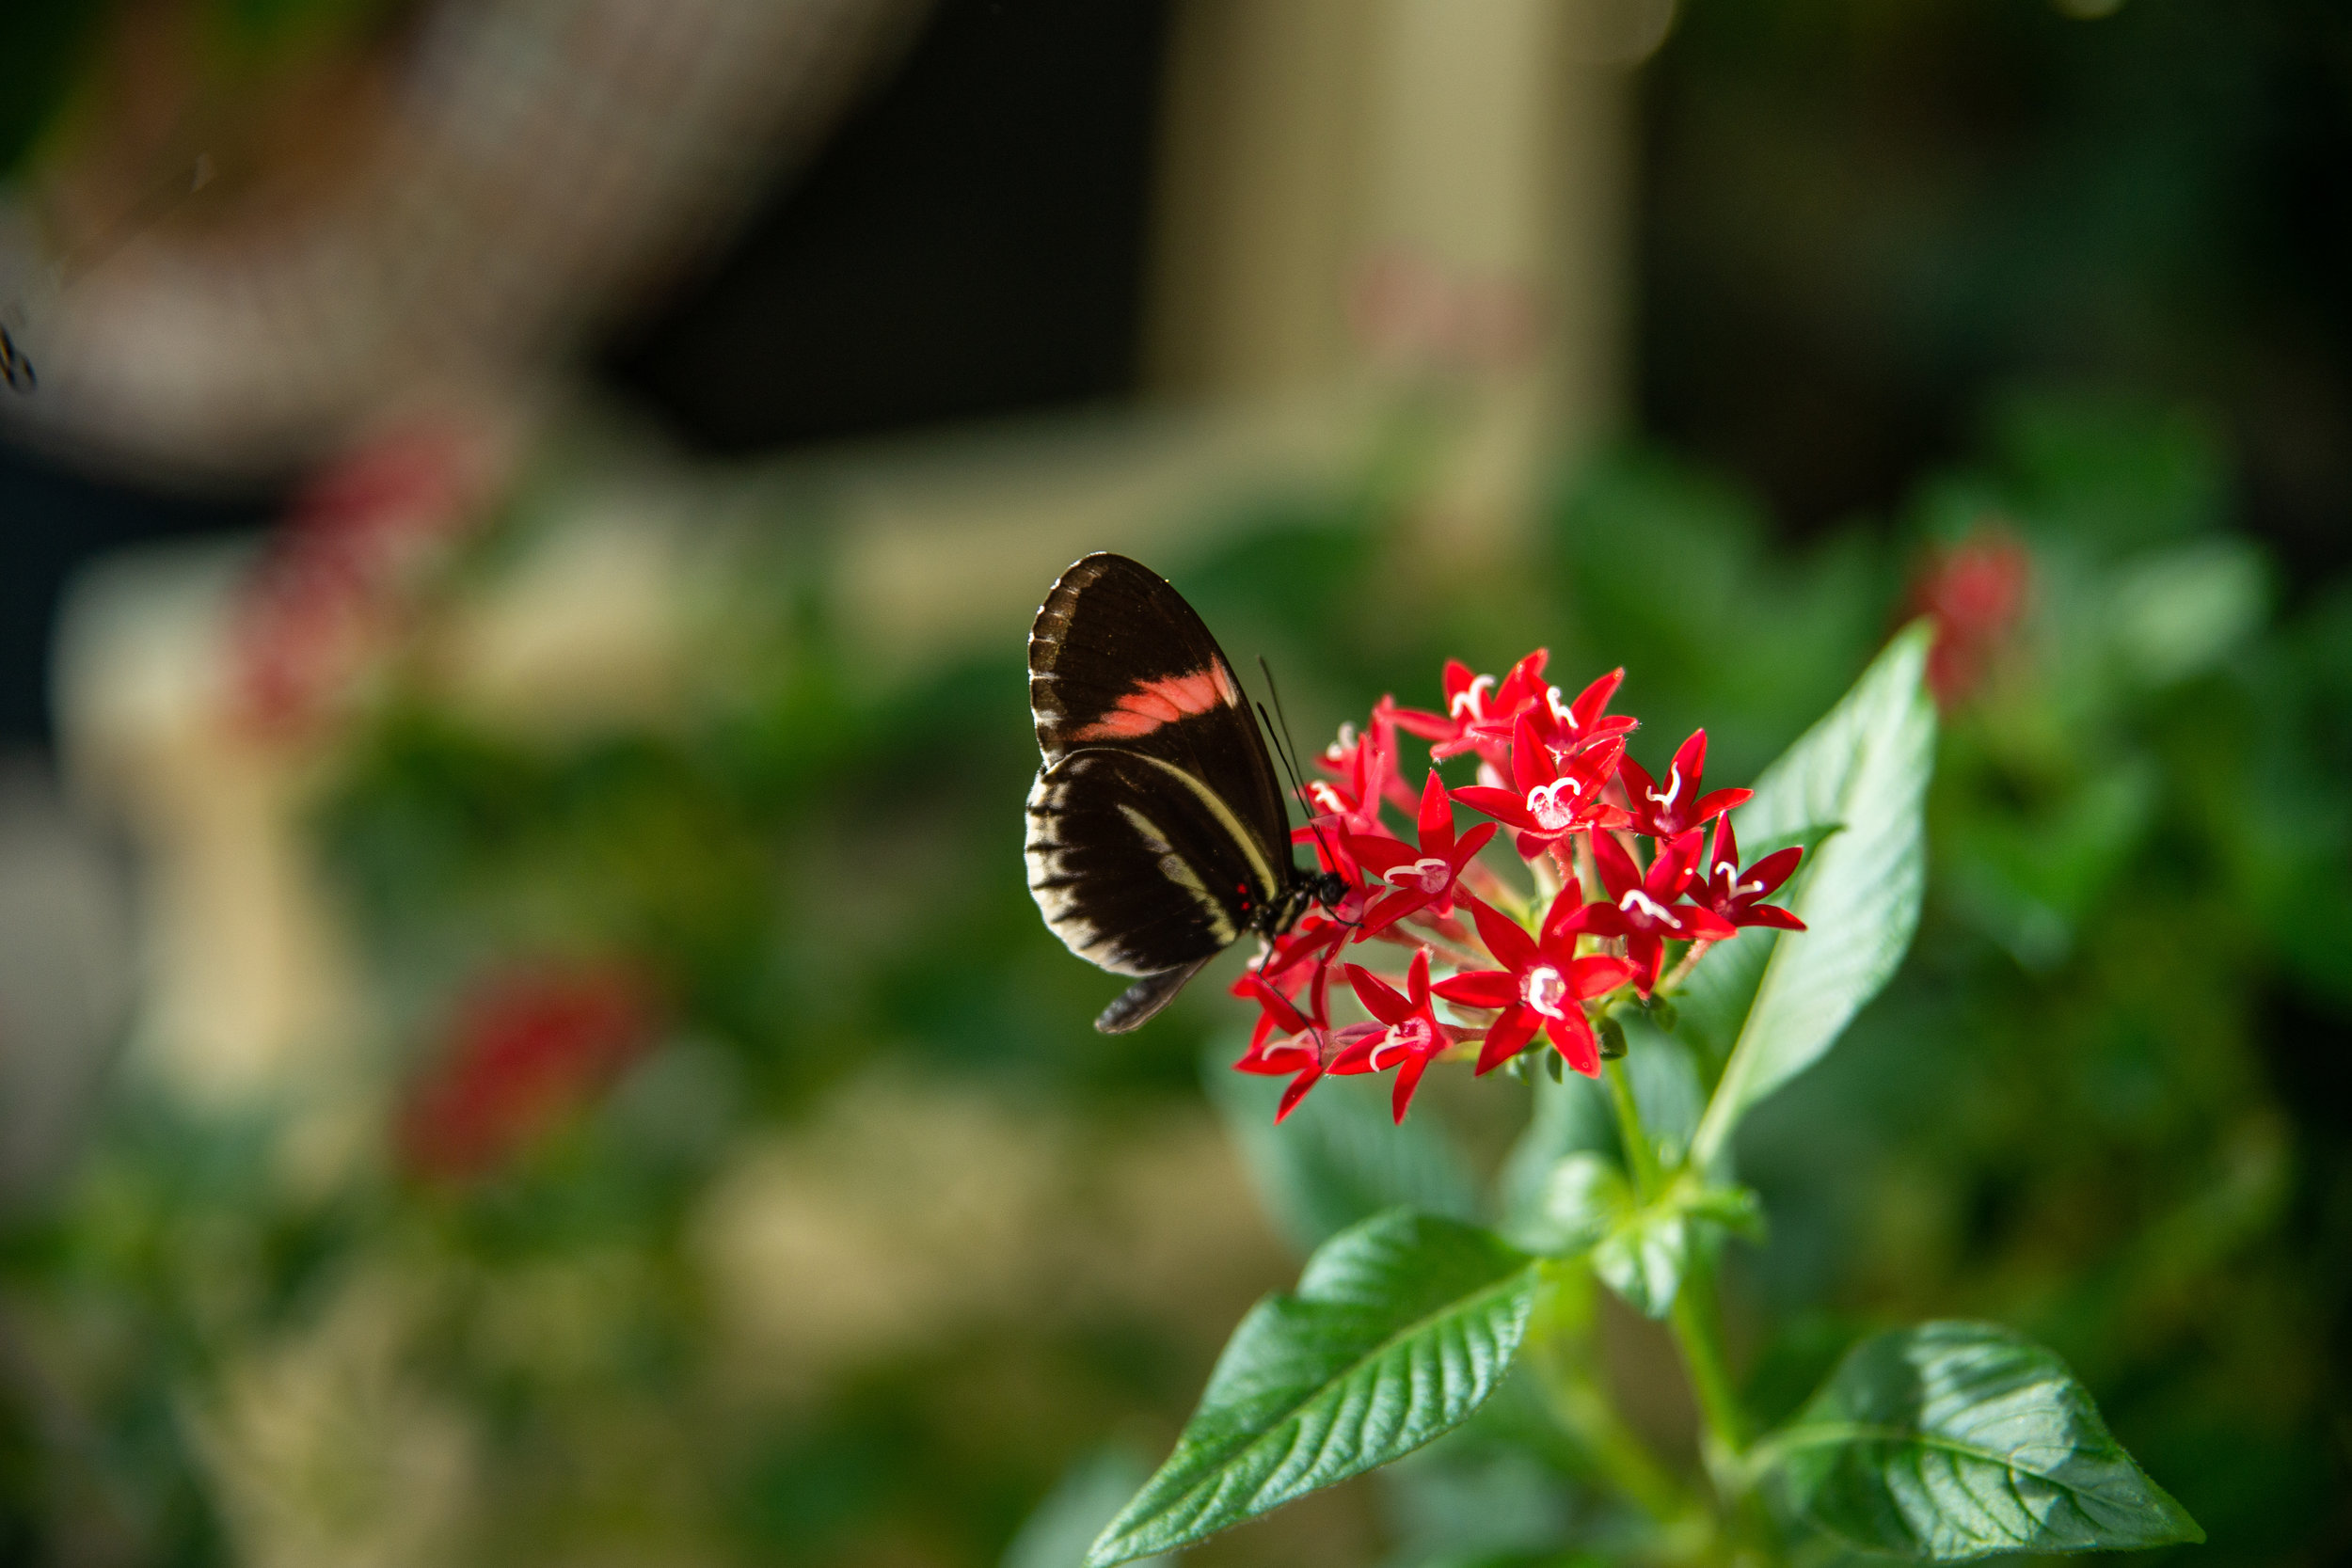 The butterflies in the garden were magnificent